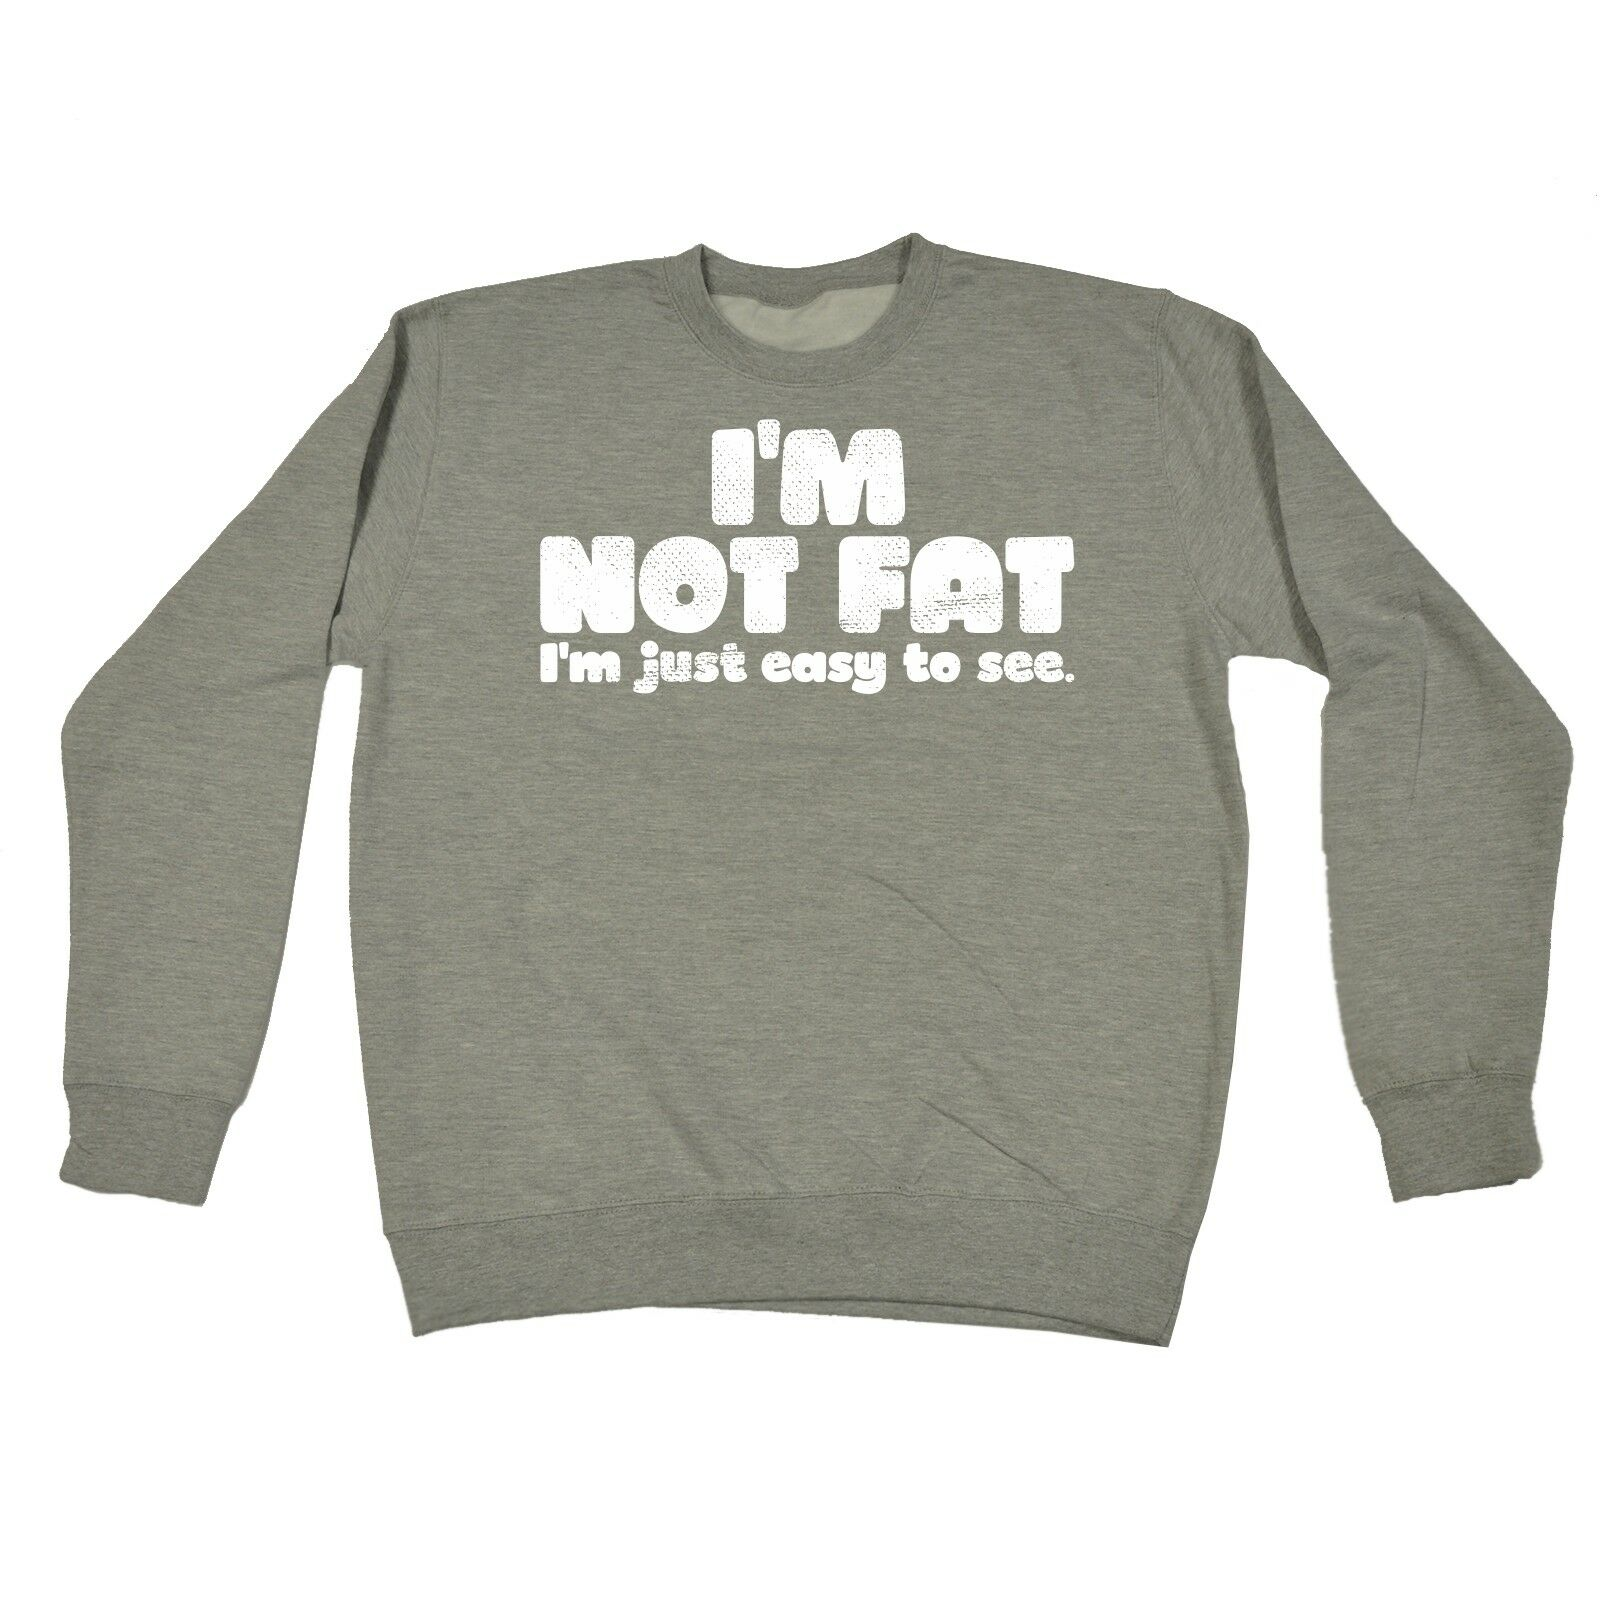 Im Not Fat Im Just Easy To See Funny Plus Sized Clothing Overweight SWEATSHIRT